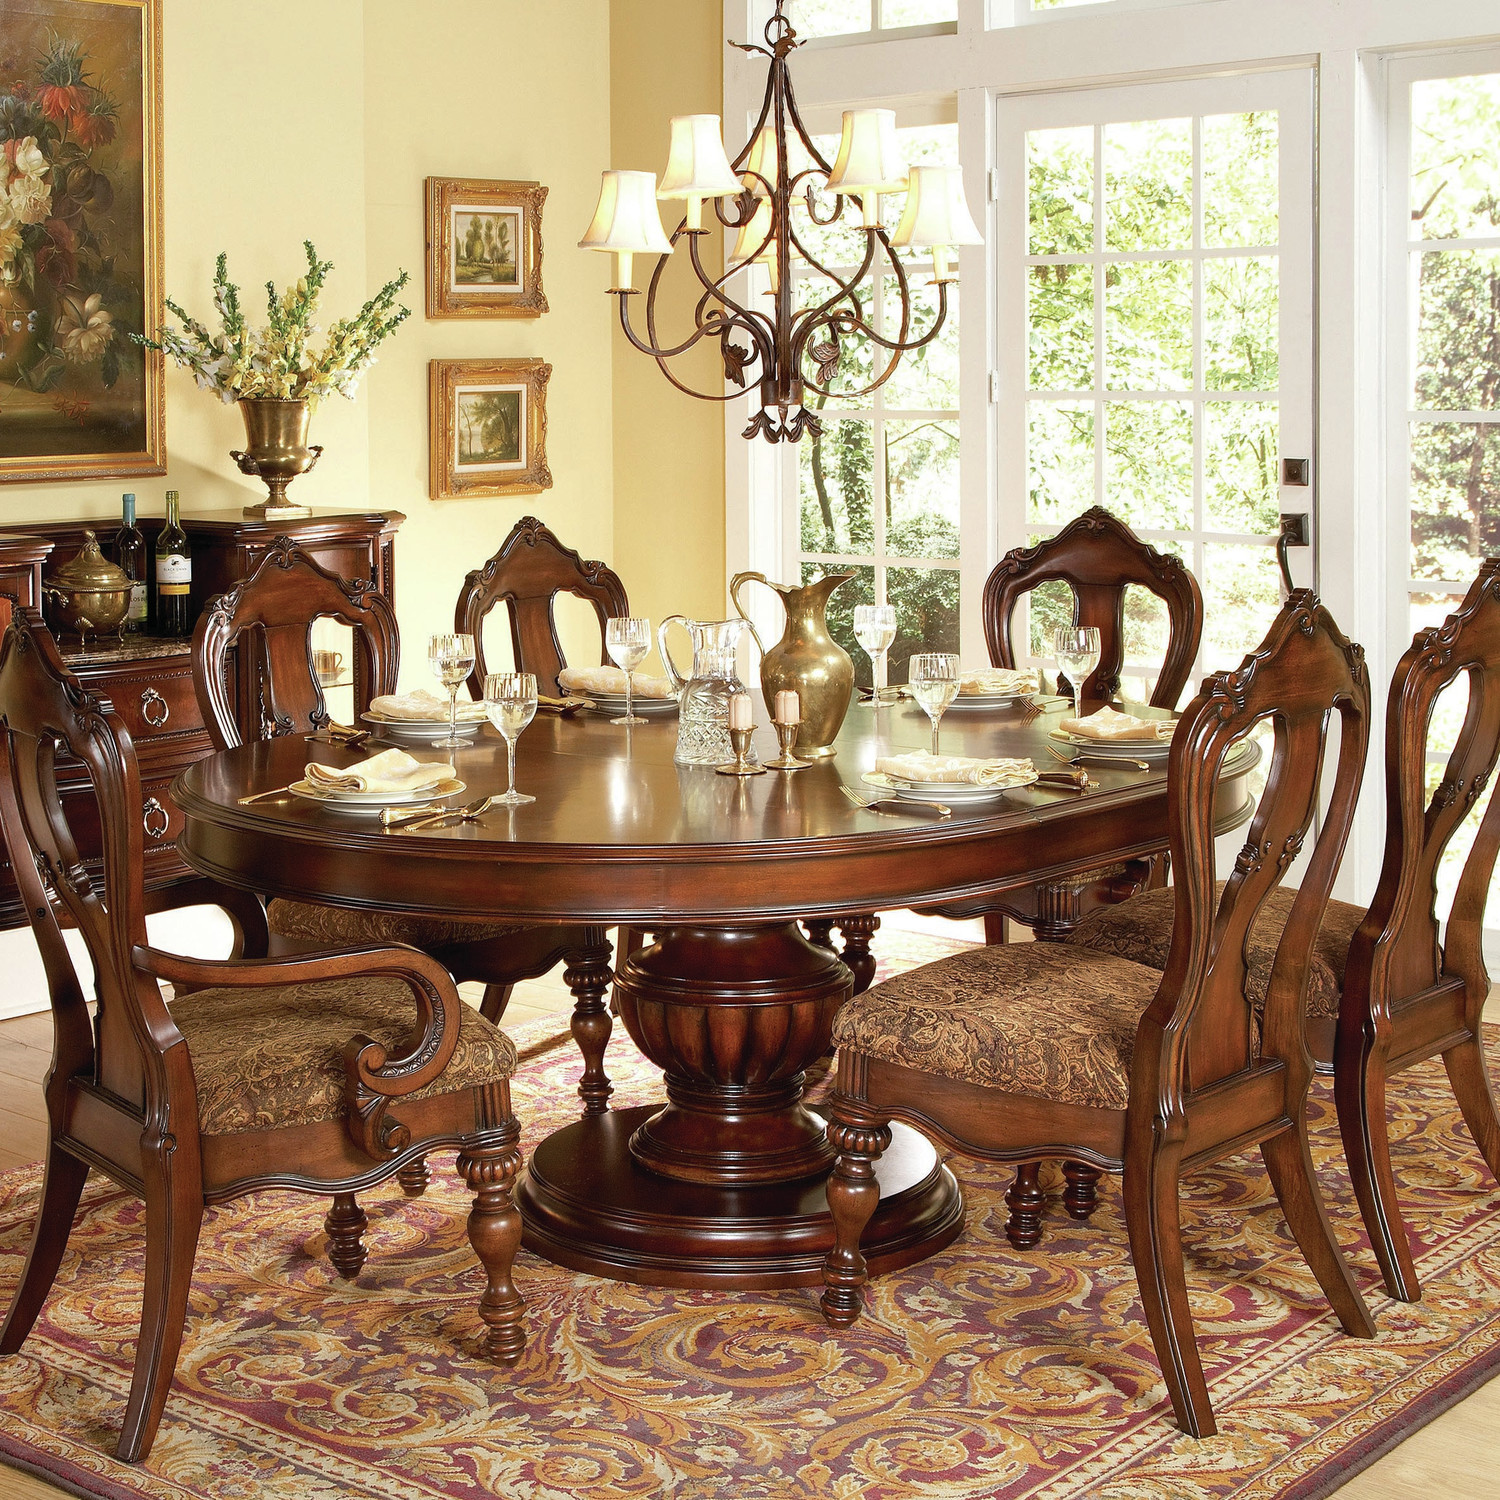 Vintage Dining Room Tables: Getting A Round Dining Room Table For 6 By Your Own